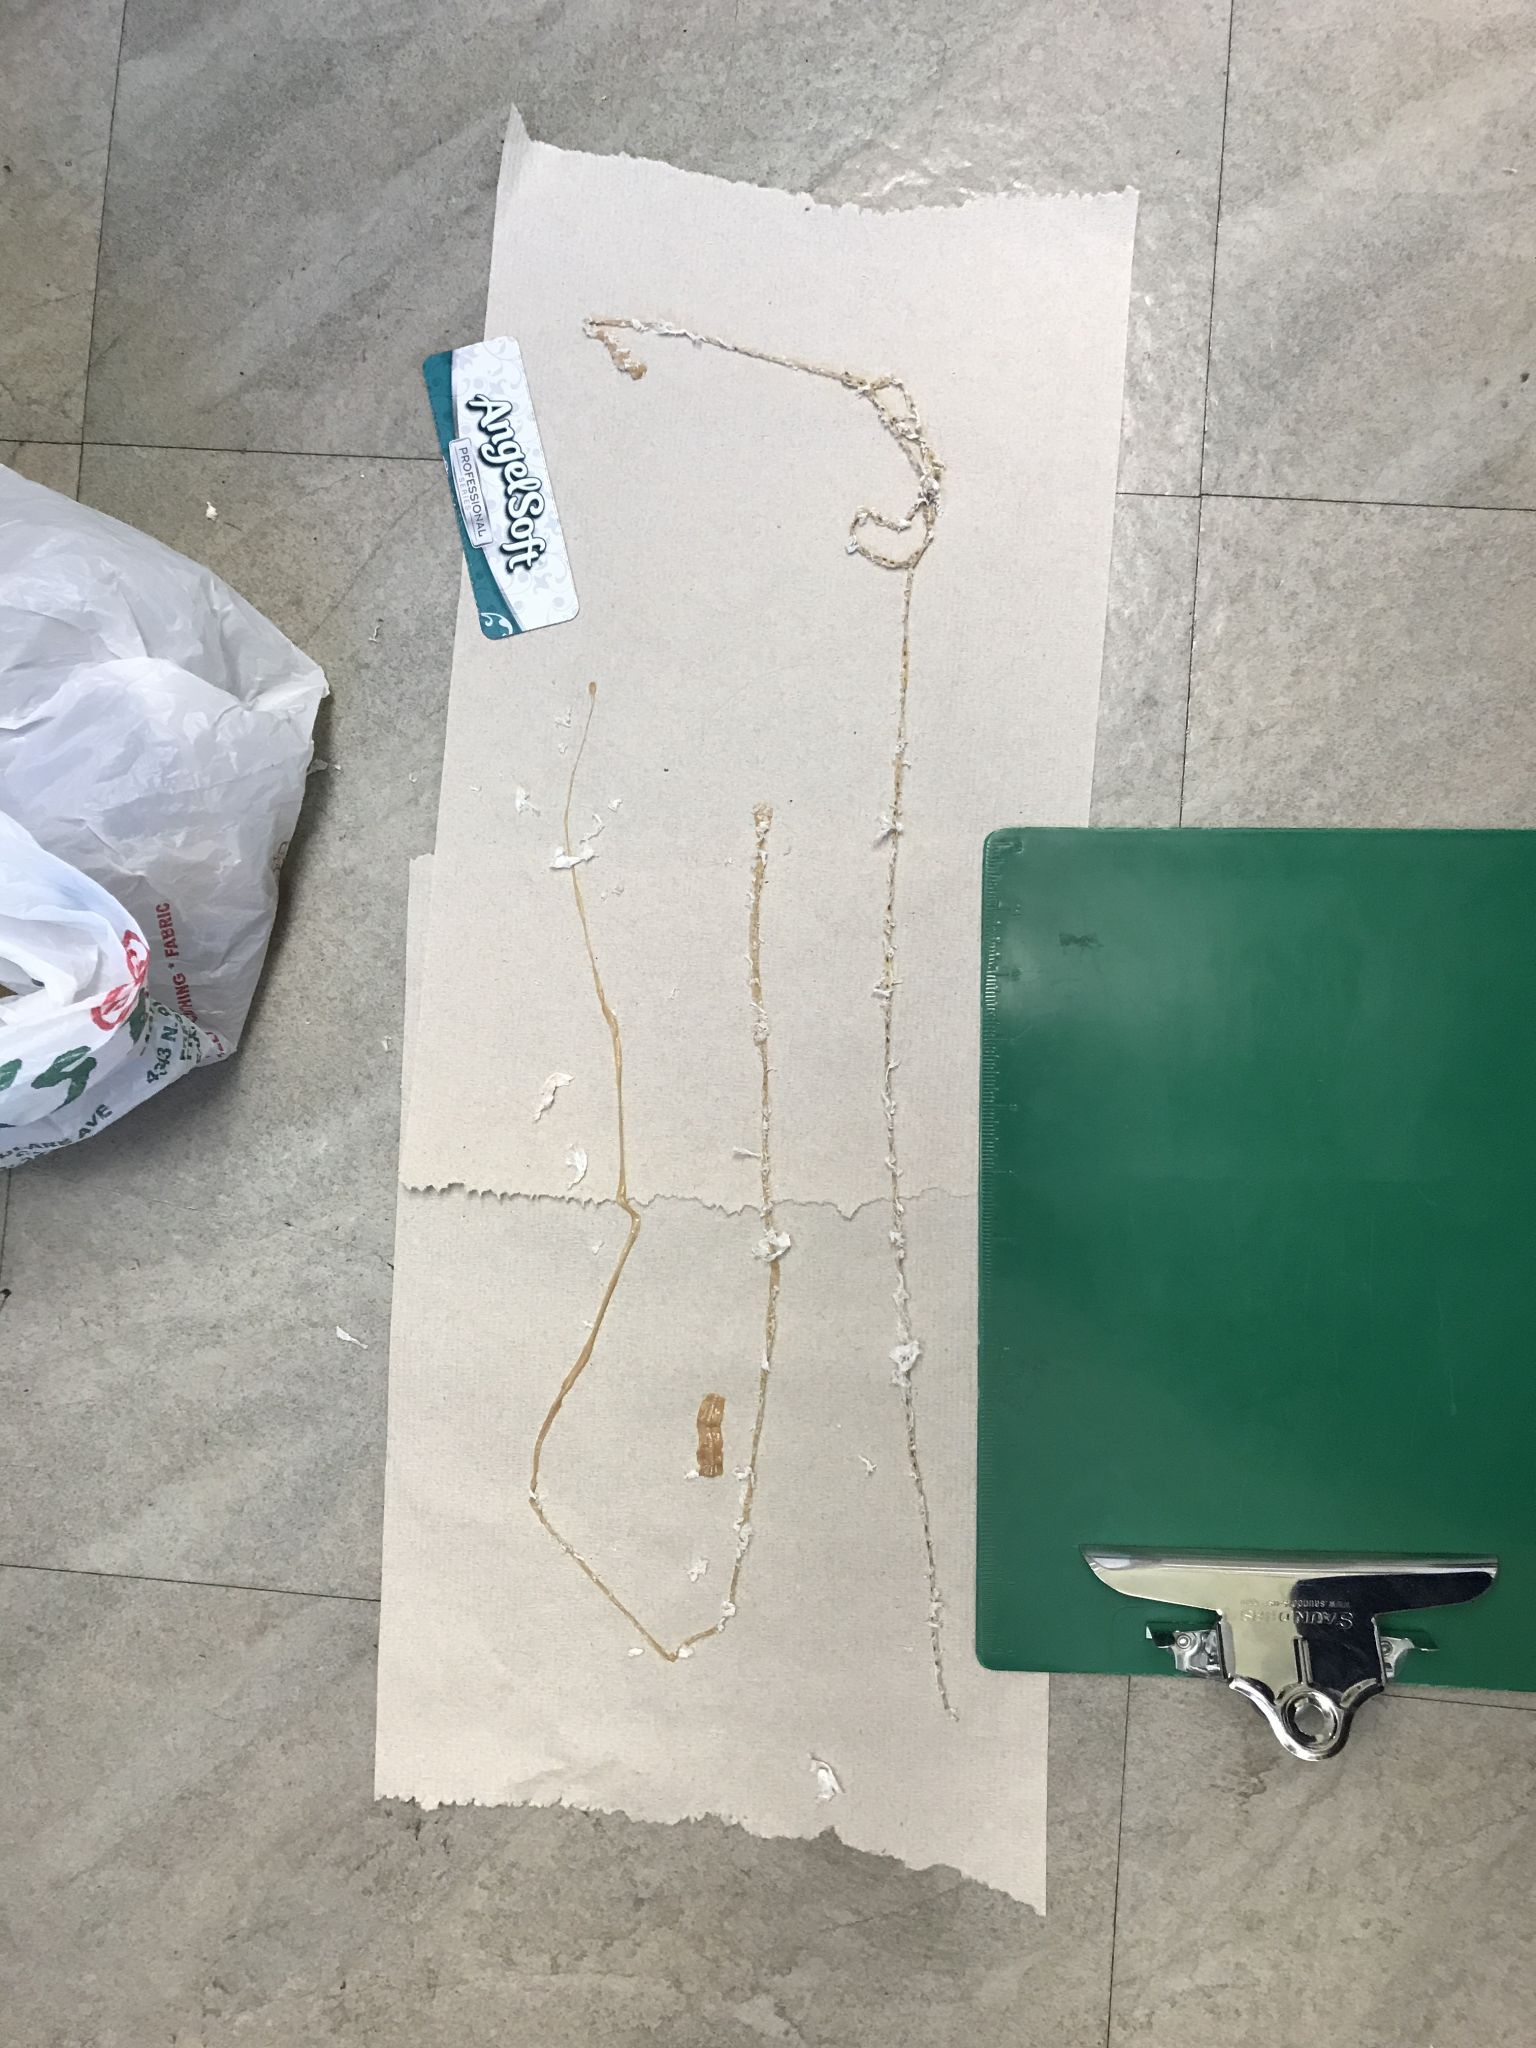 Sushi Lover Pulled A 5 Foot Tapeworm From Intestine Fresno Doc Says But the korean lady toke my order went in to the back and. sushi lover pulled a 5 foot tapeworm